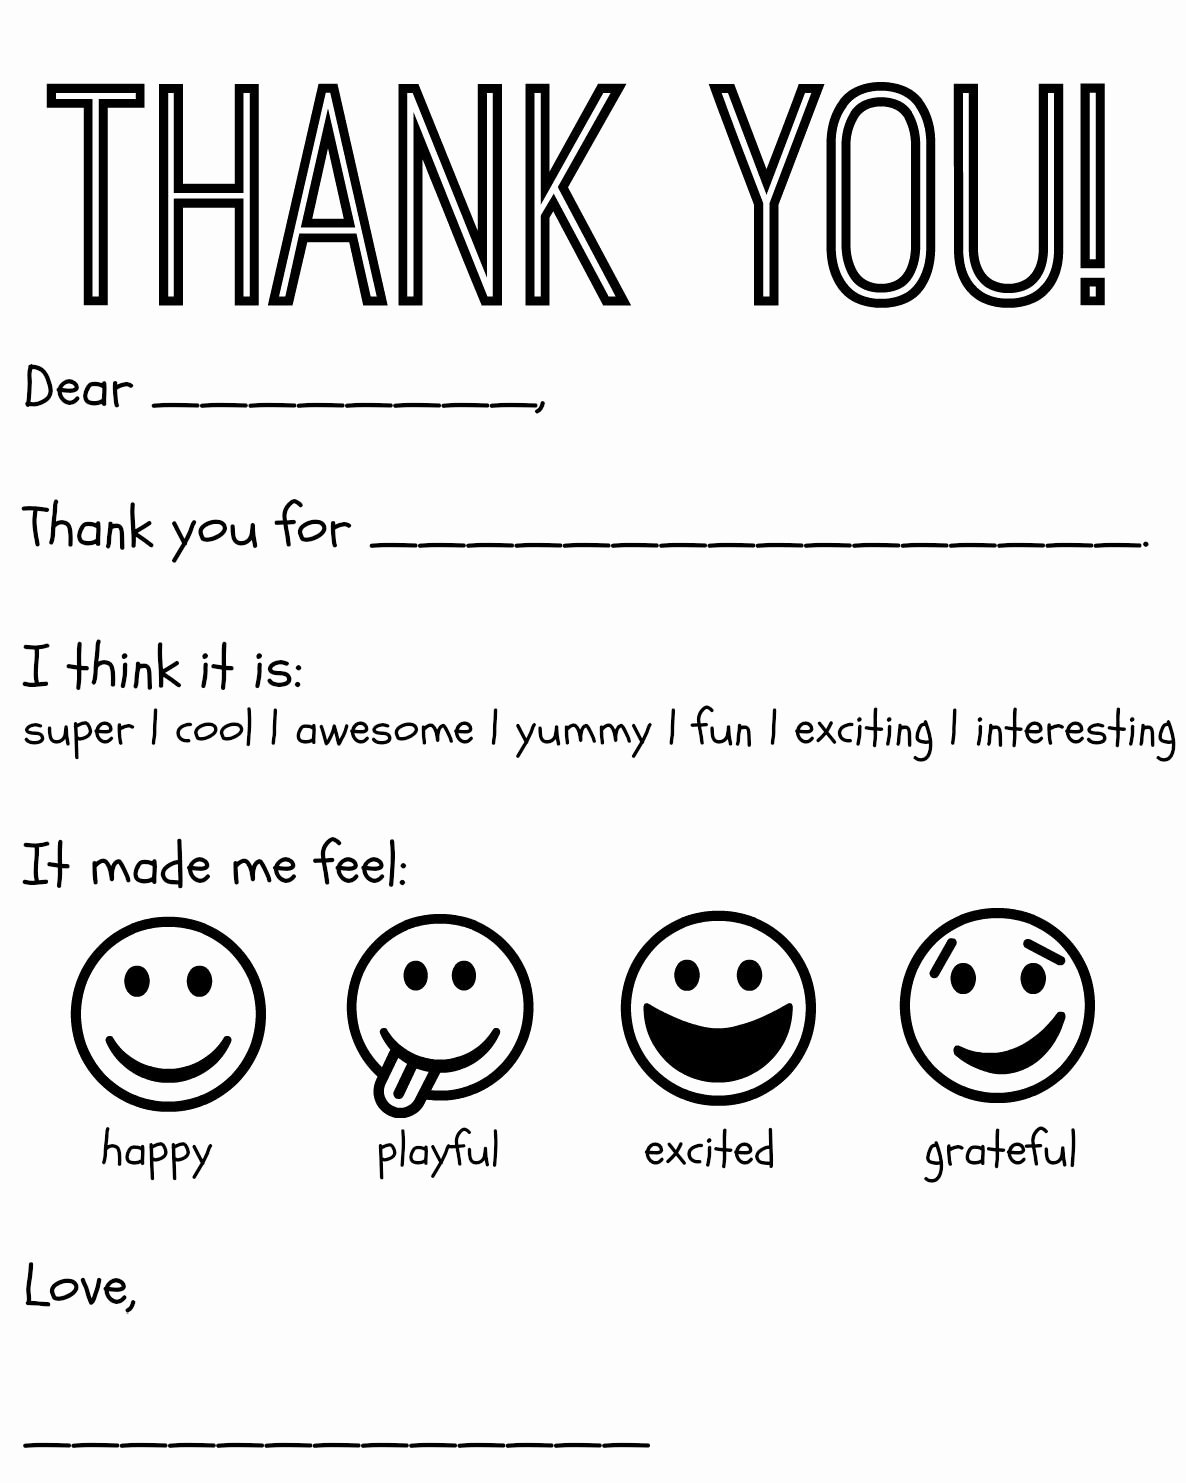 Thank You Template Free Awesome Free Printable Kids Thank You Cards to Color